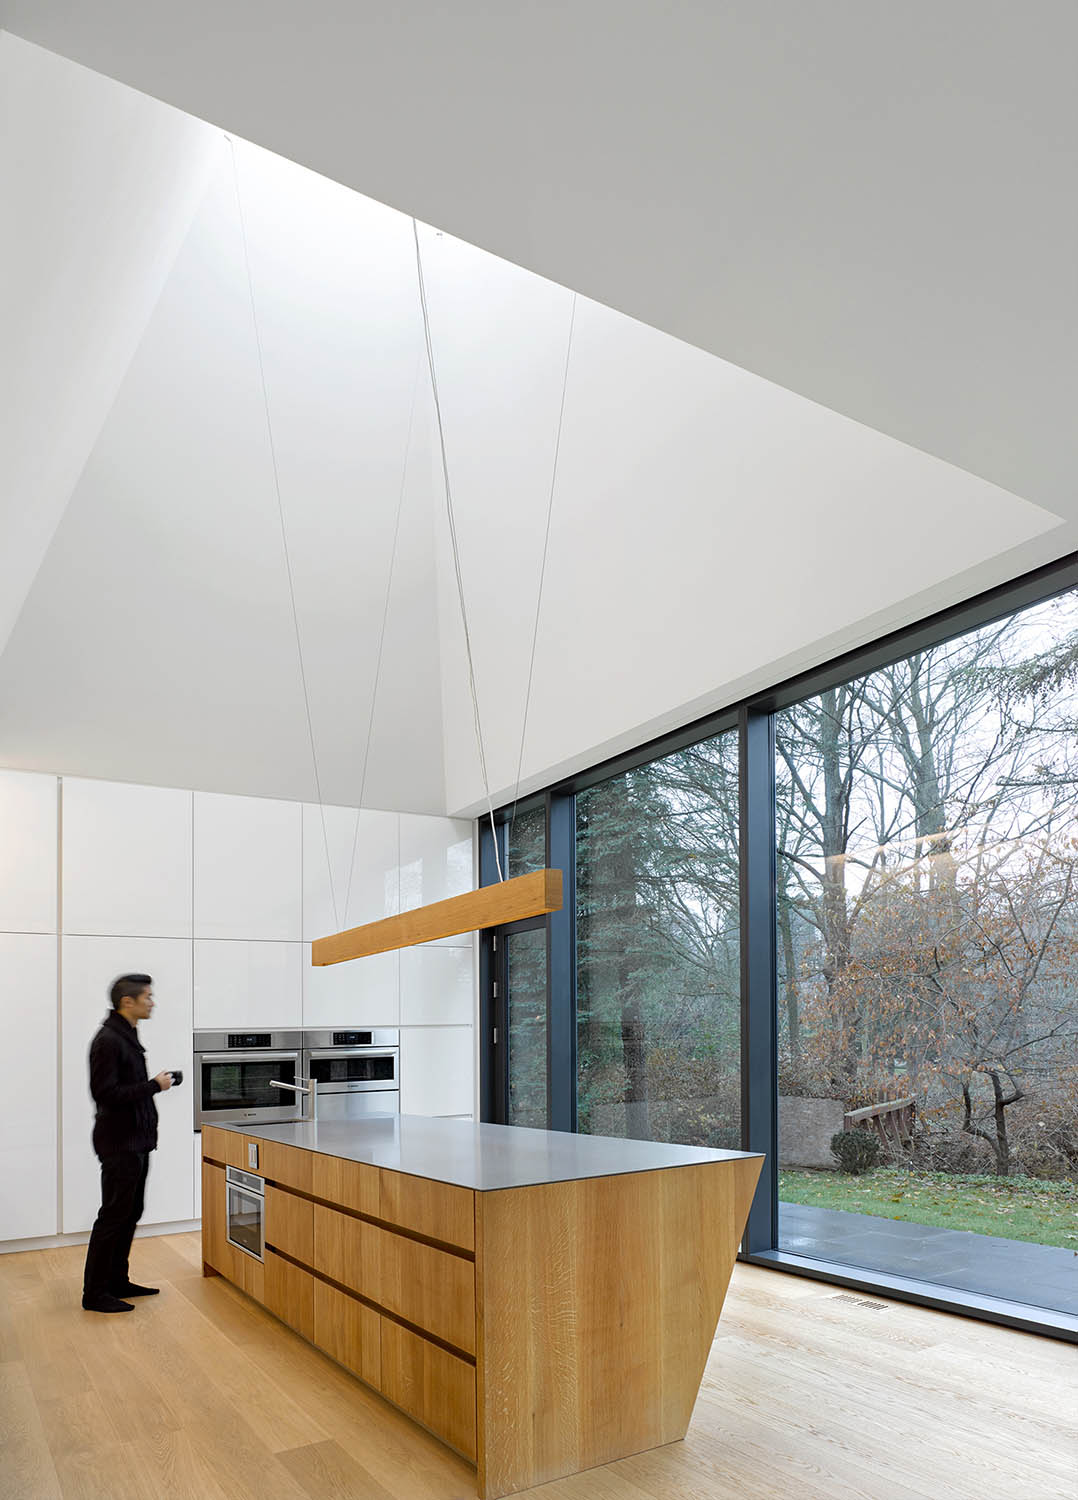 Pyramidal ceiling and proximate view.   Ben Rahn/A-Frame Inc.